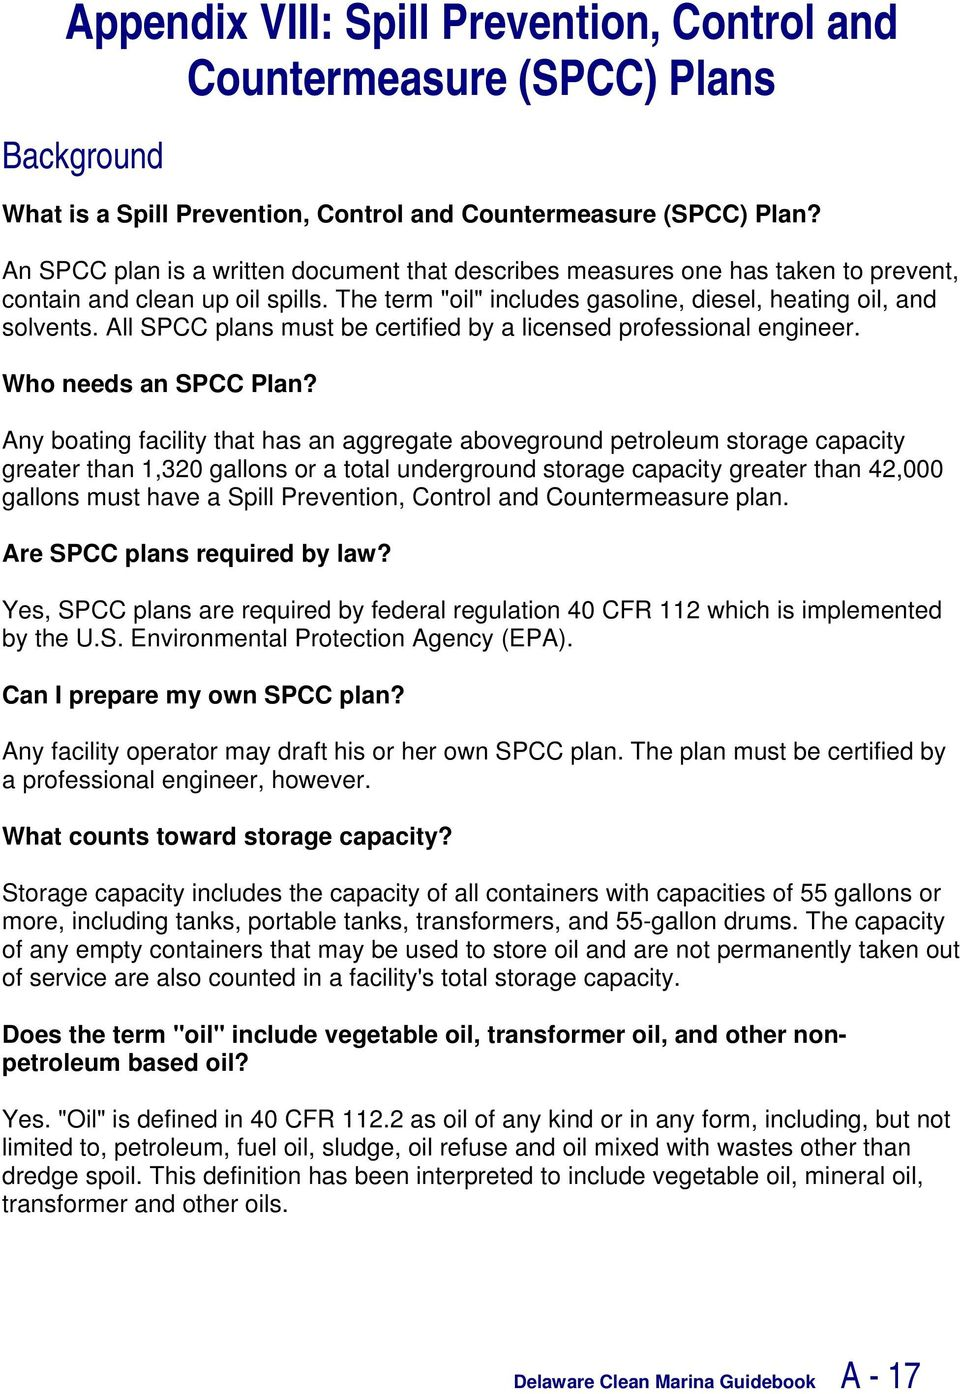 All SPCC plans must be certified by a licensed professional engineer. Who needs an SPCC Plan?